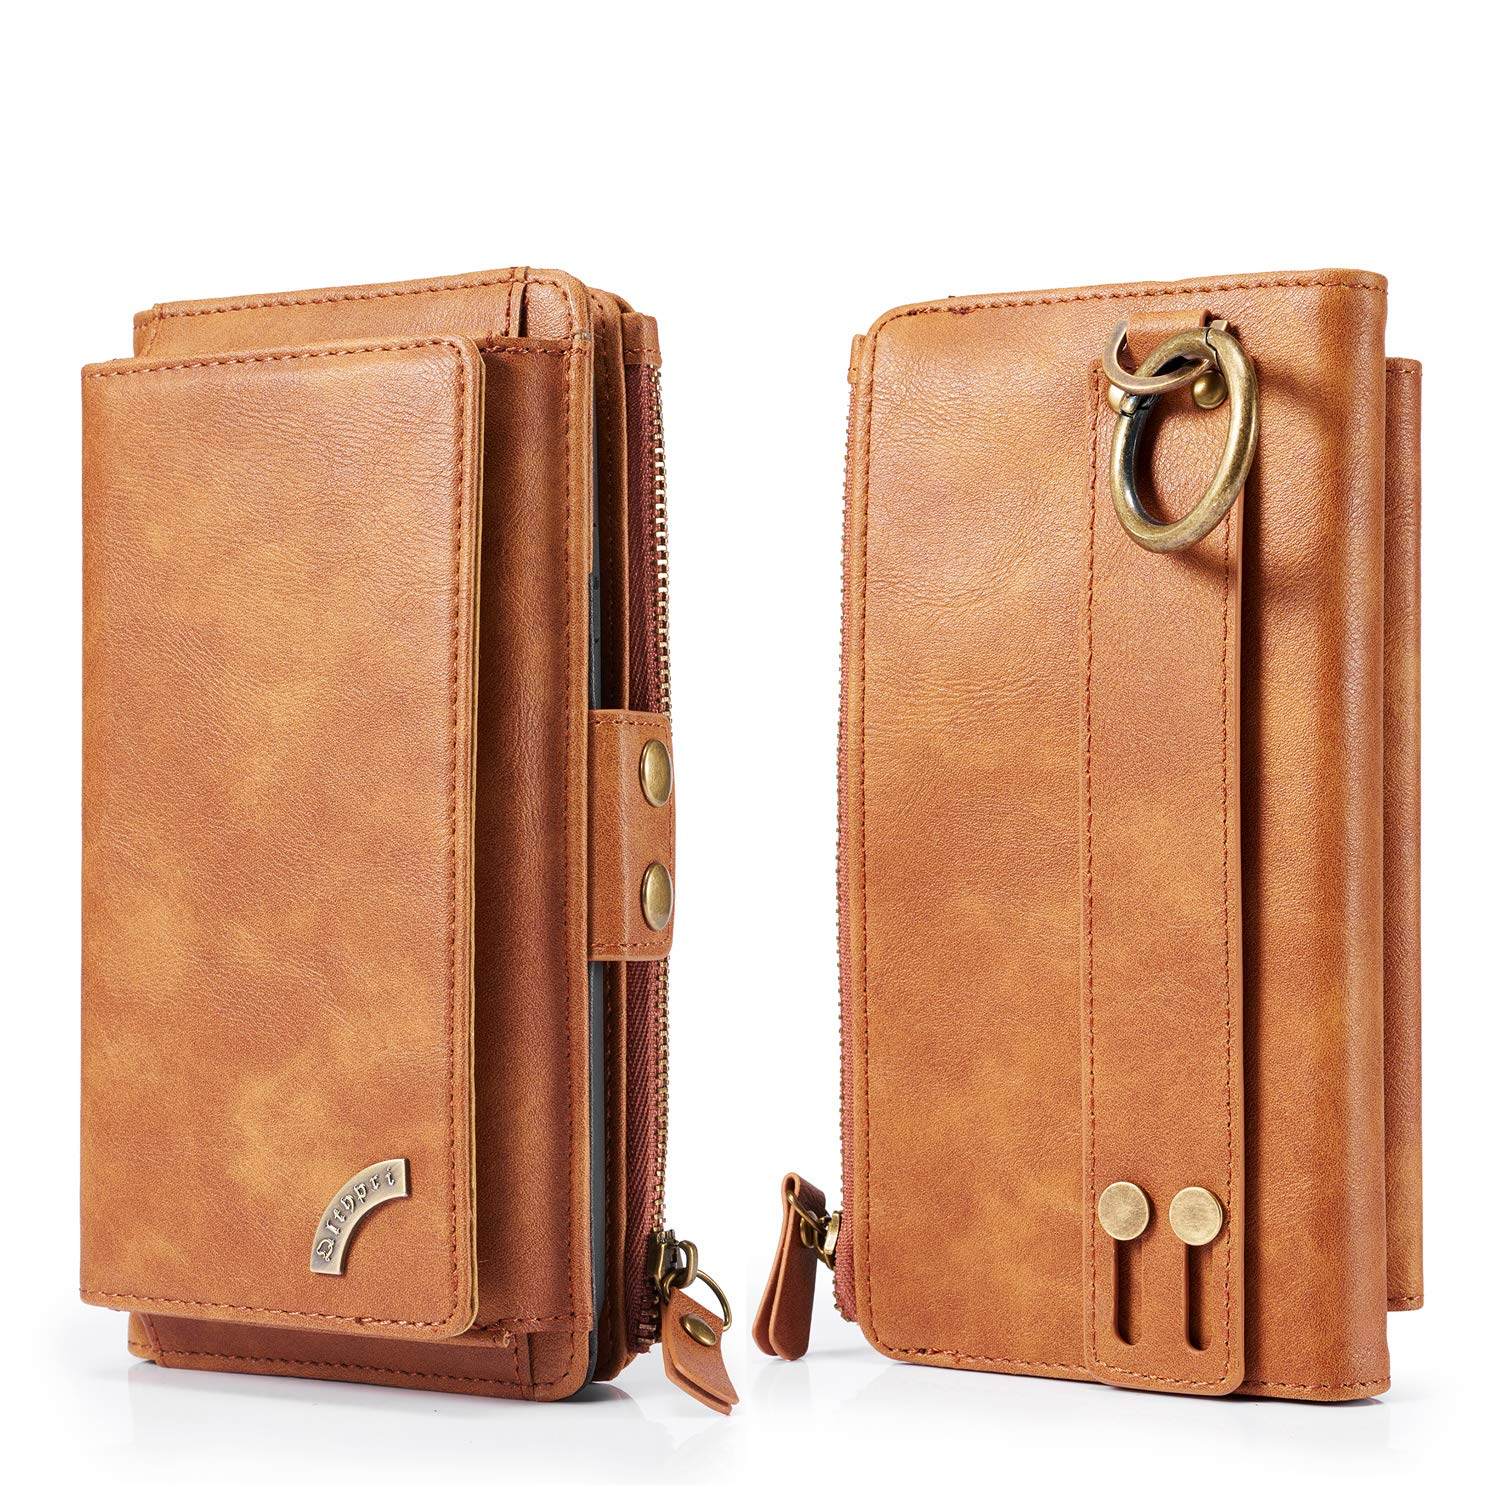 QLTYPRI iPhone XR Wallet Case, Premium PU Leather Clutch Detachable Magnetic 12 Card Holder 2 Cash 1 Zip Pocket Purse Protective PC Shell Multi-Functional Case Cover for iPhone XR - Brown